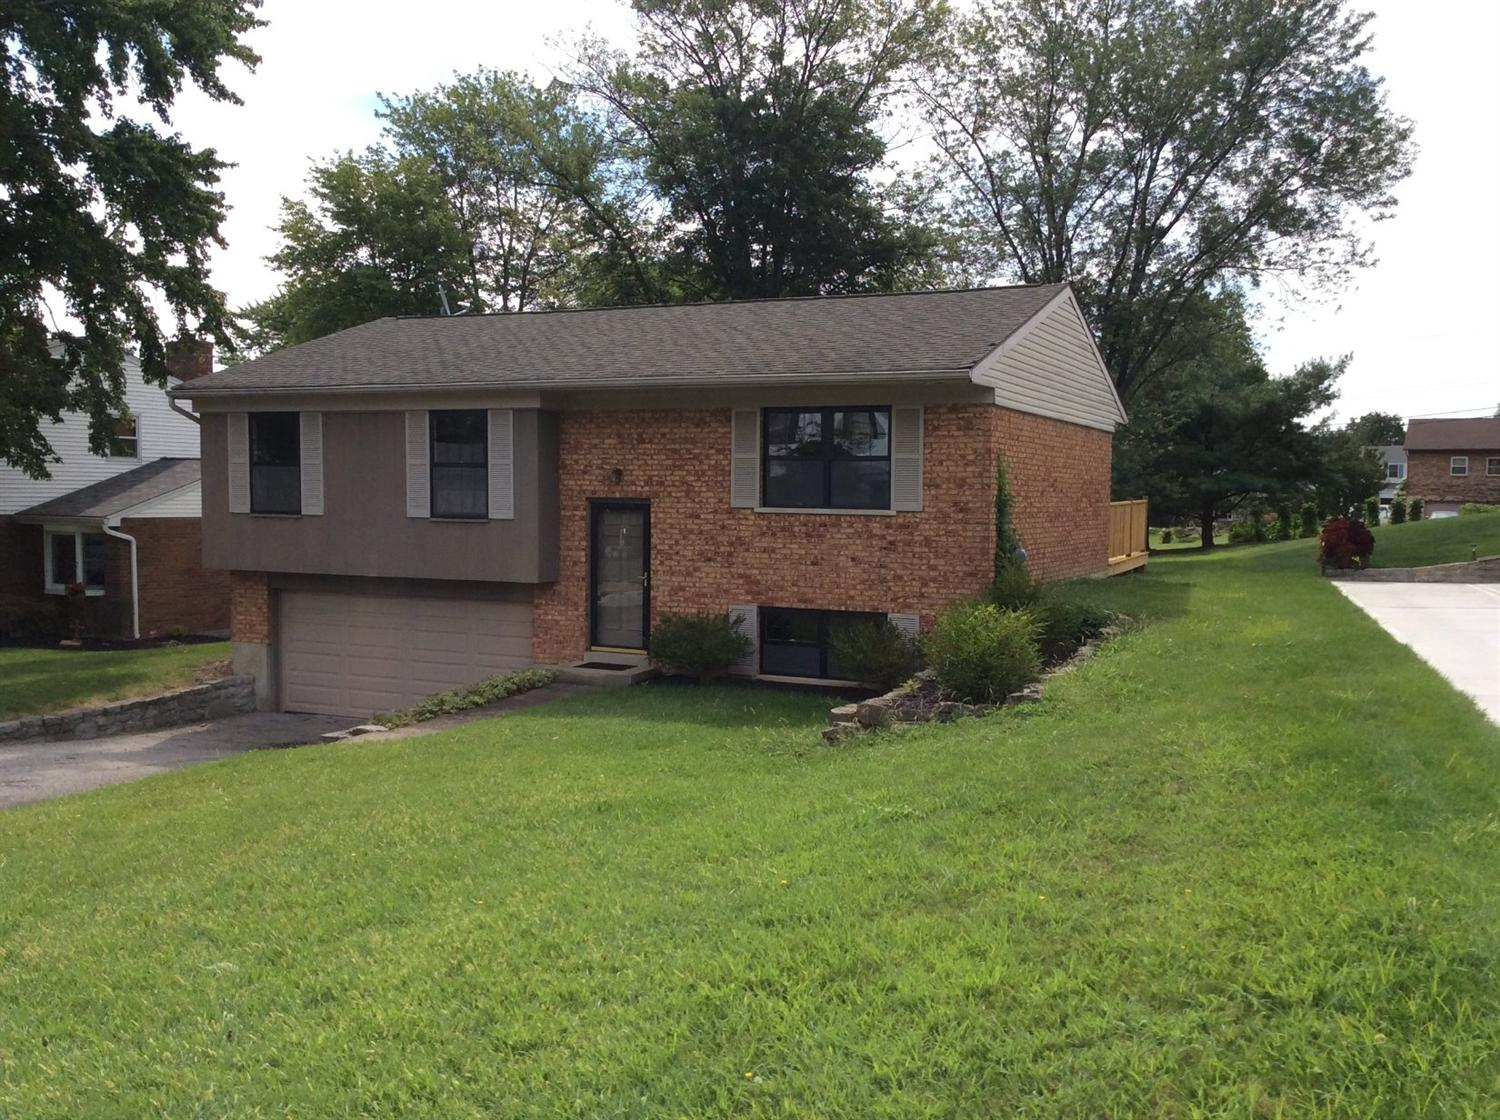 Rental Homes for Rent, ListingId:34787078, location: 2823 Campus Drive Crestview Hills 41017